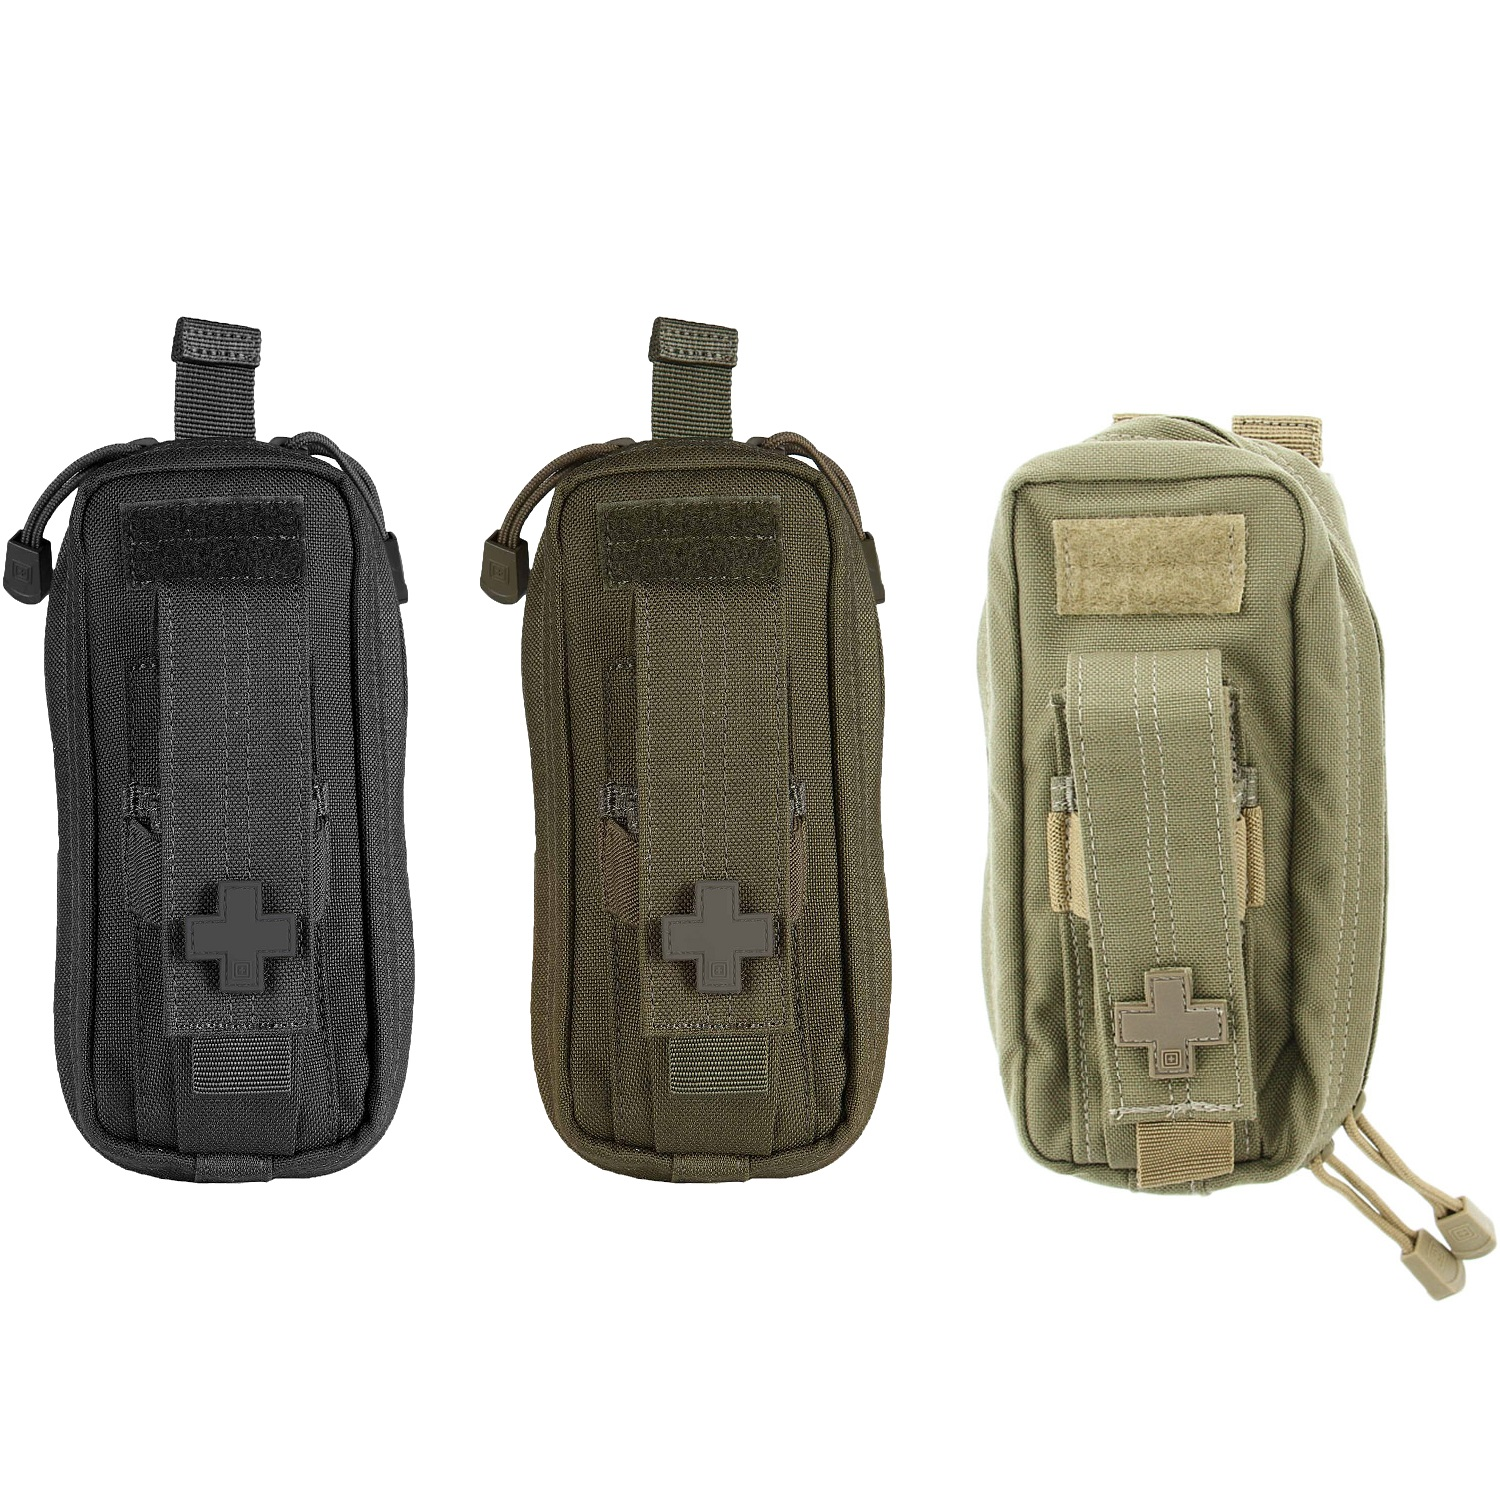 809945707ab 5.11 Tactical 3 X 6 Medical Kit MOLLE Pouch Padded Gear Bag